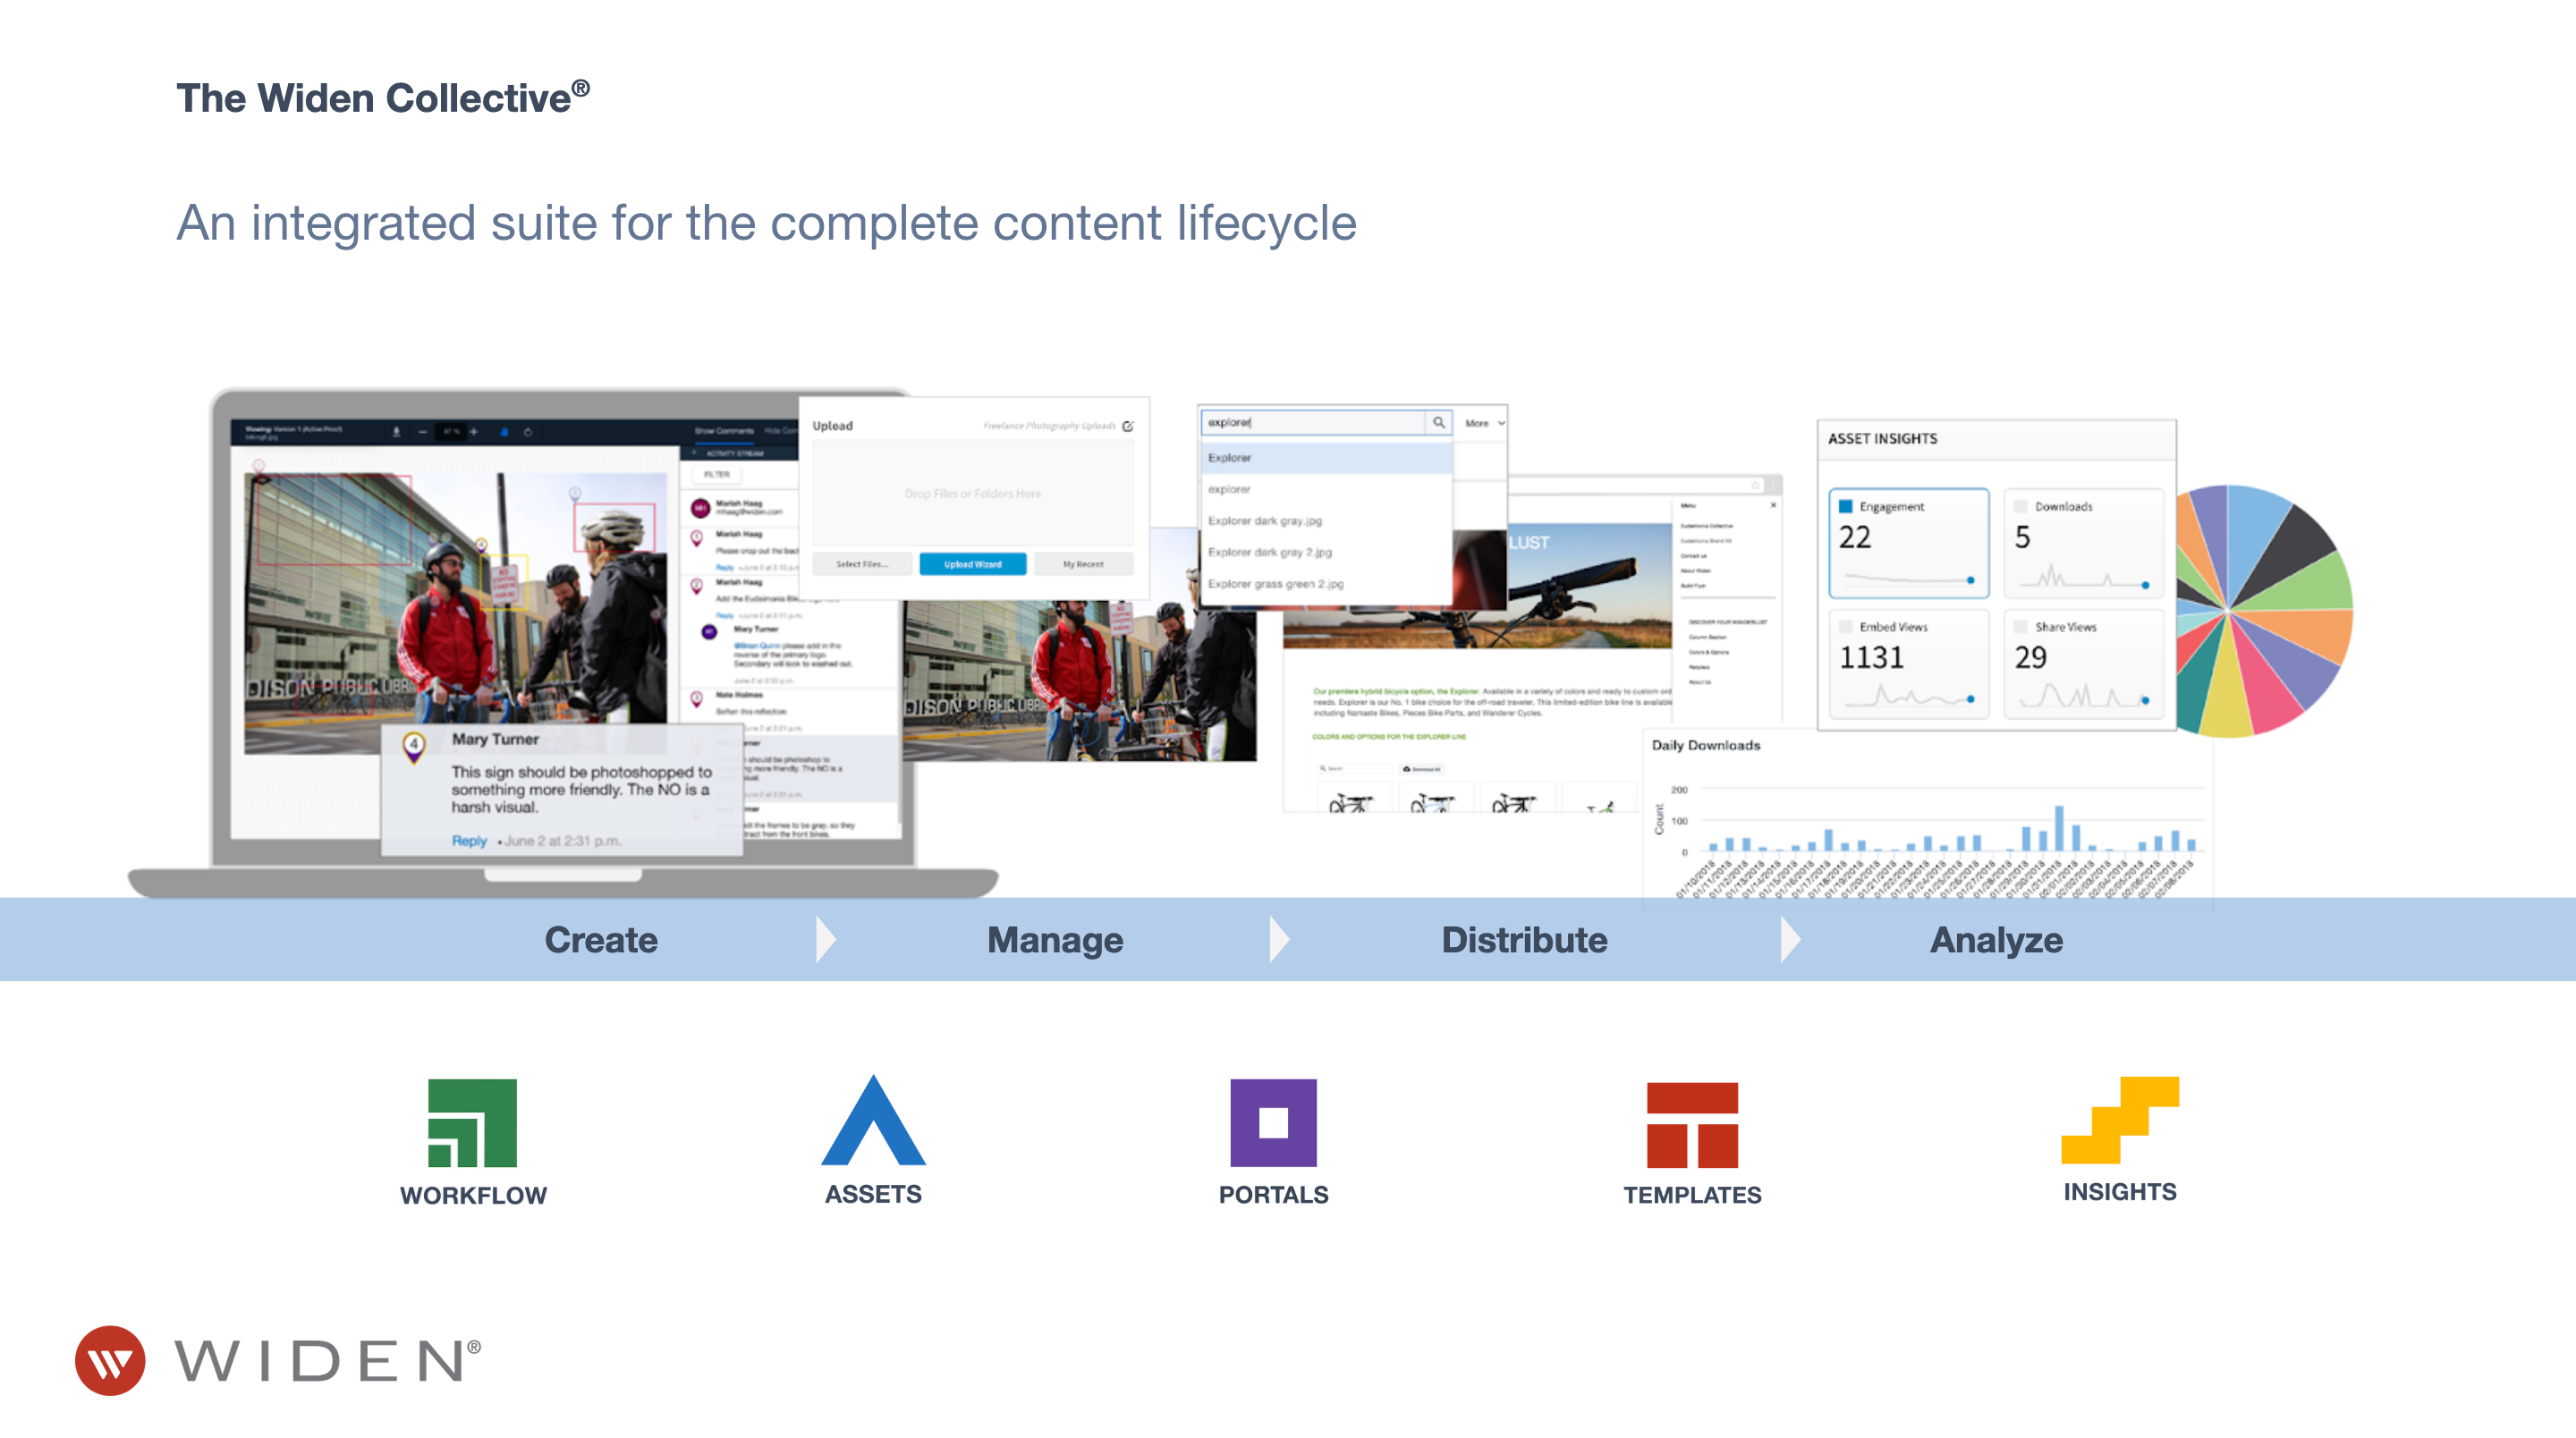 The Widen Collective – an integrated suite for the complete content lifecycle. Try it free at www.widen.com.